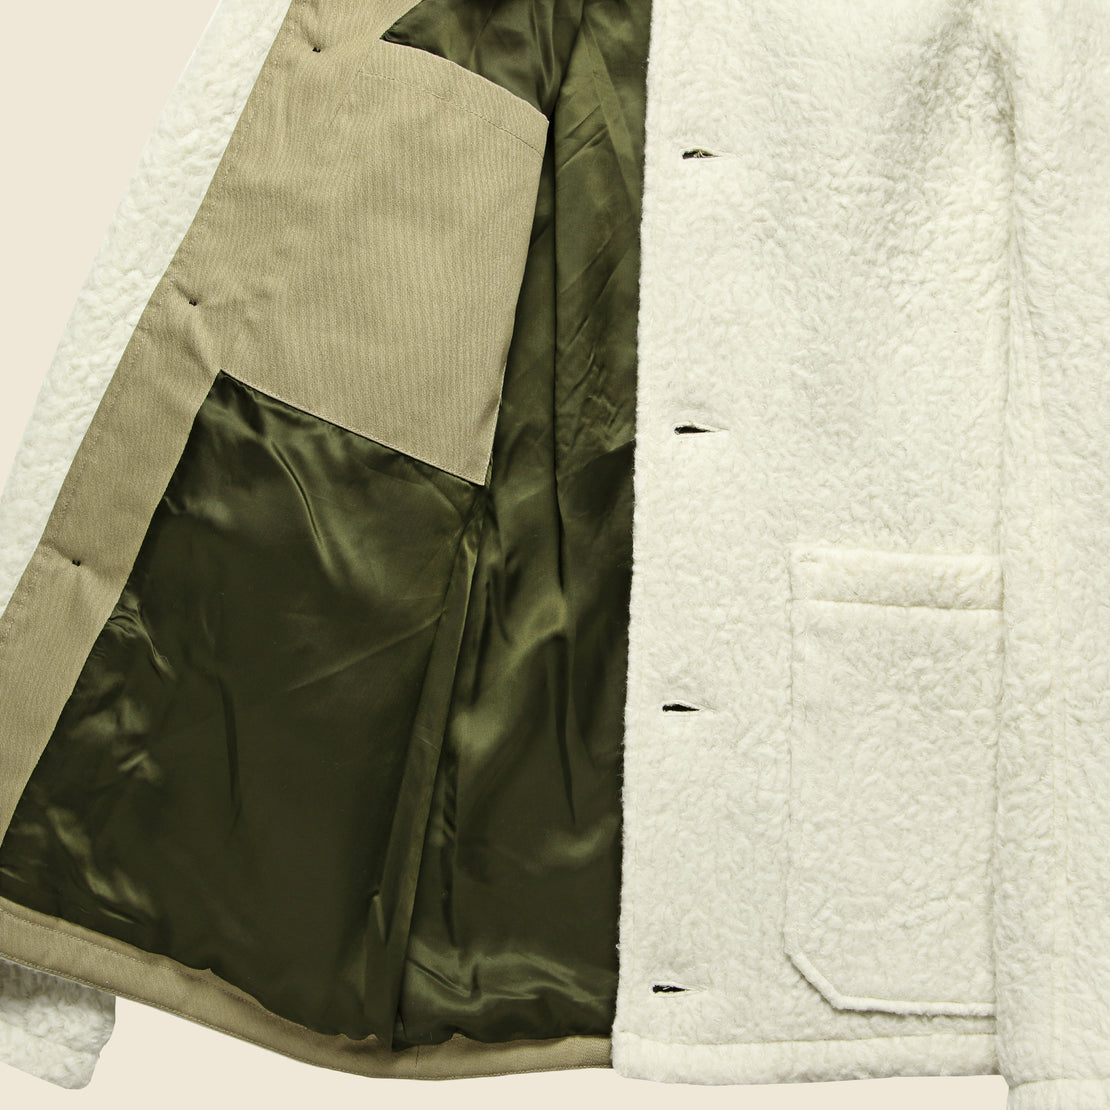 Sherpa Chore Jacket - White